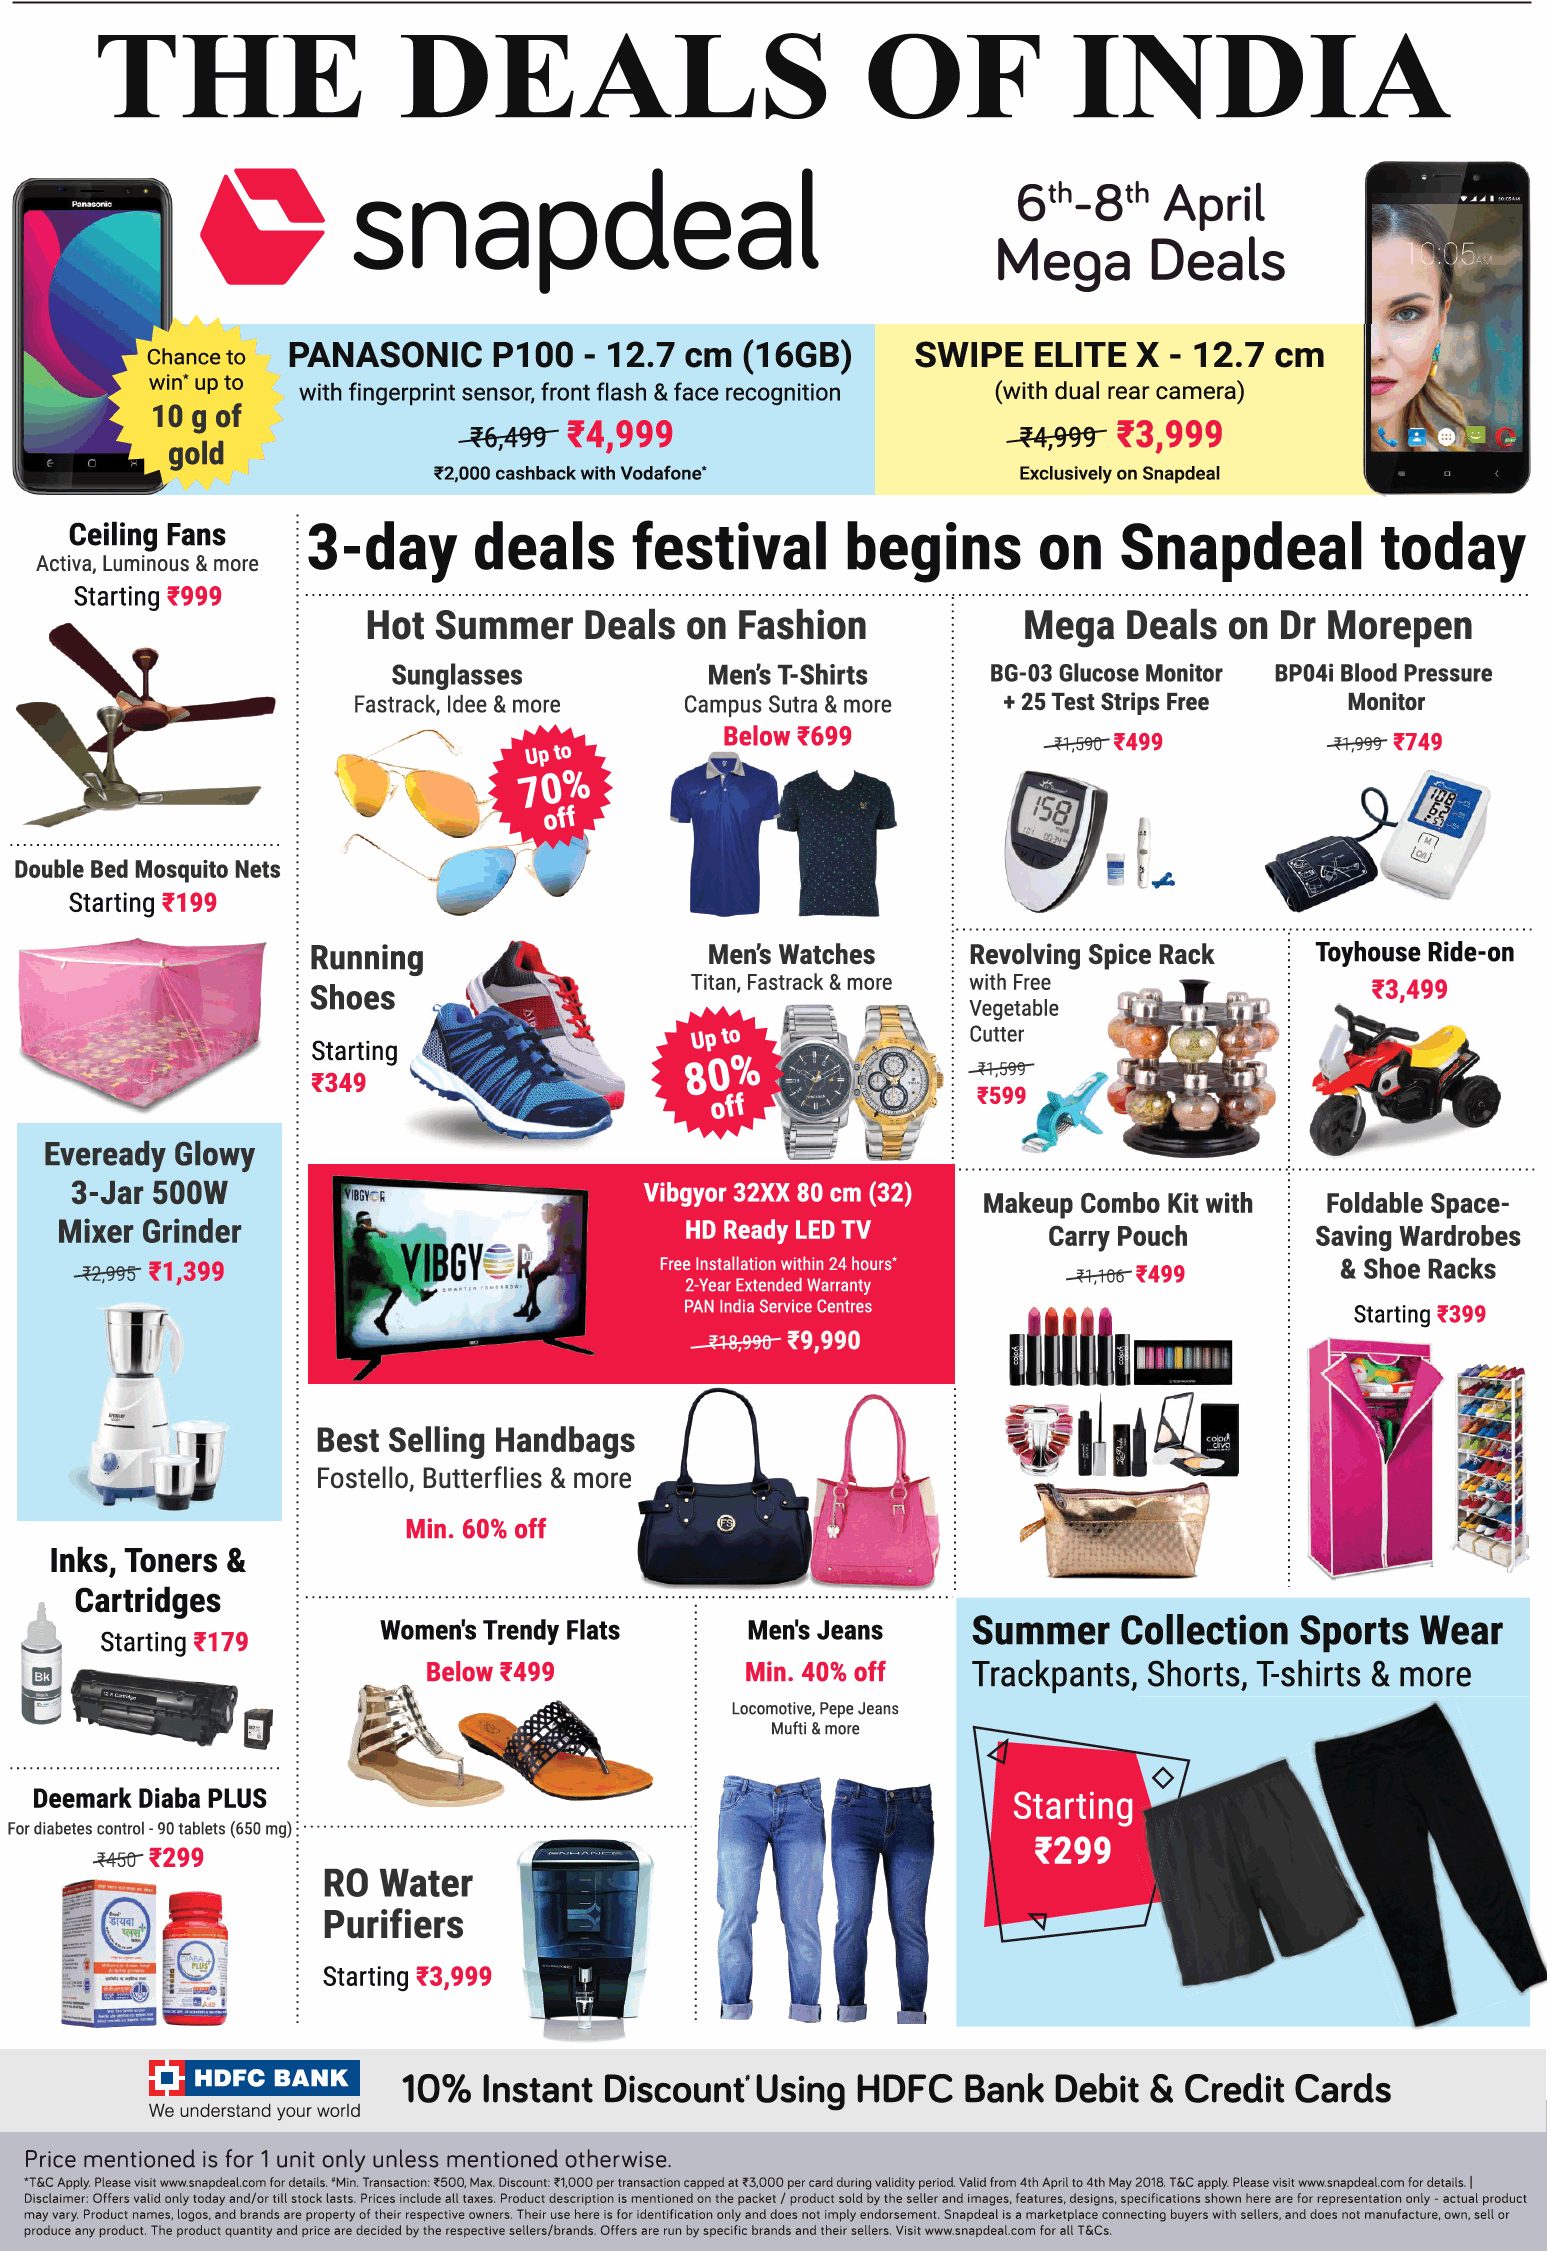 b6a85e131 Snapdeal The Deals Of India Ad - Advert Gallery